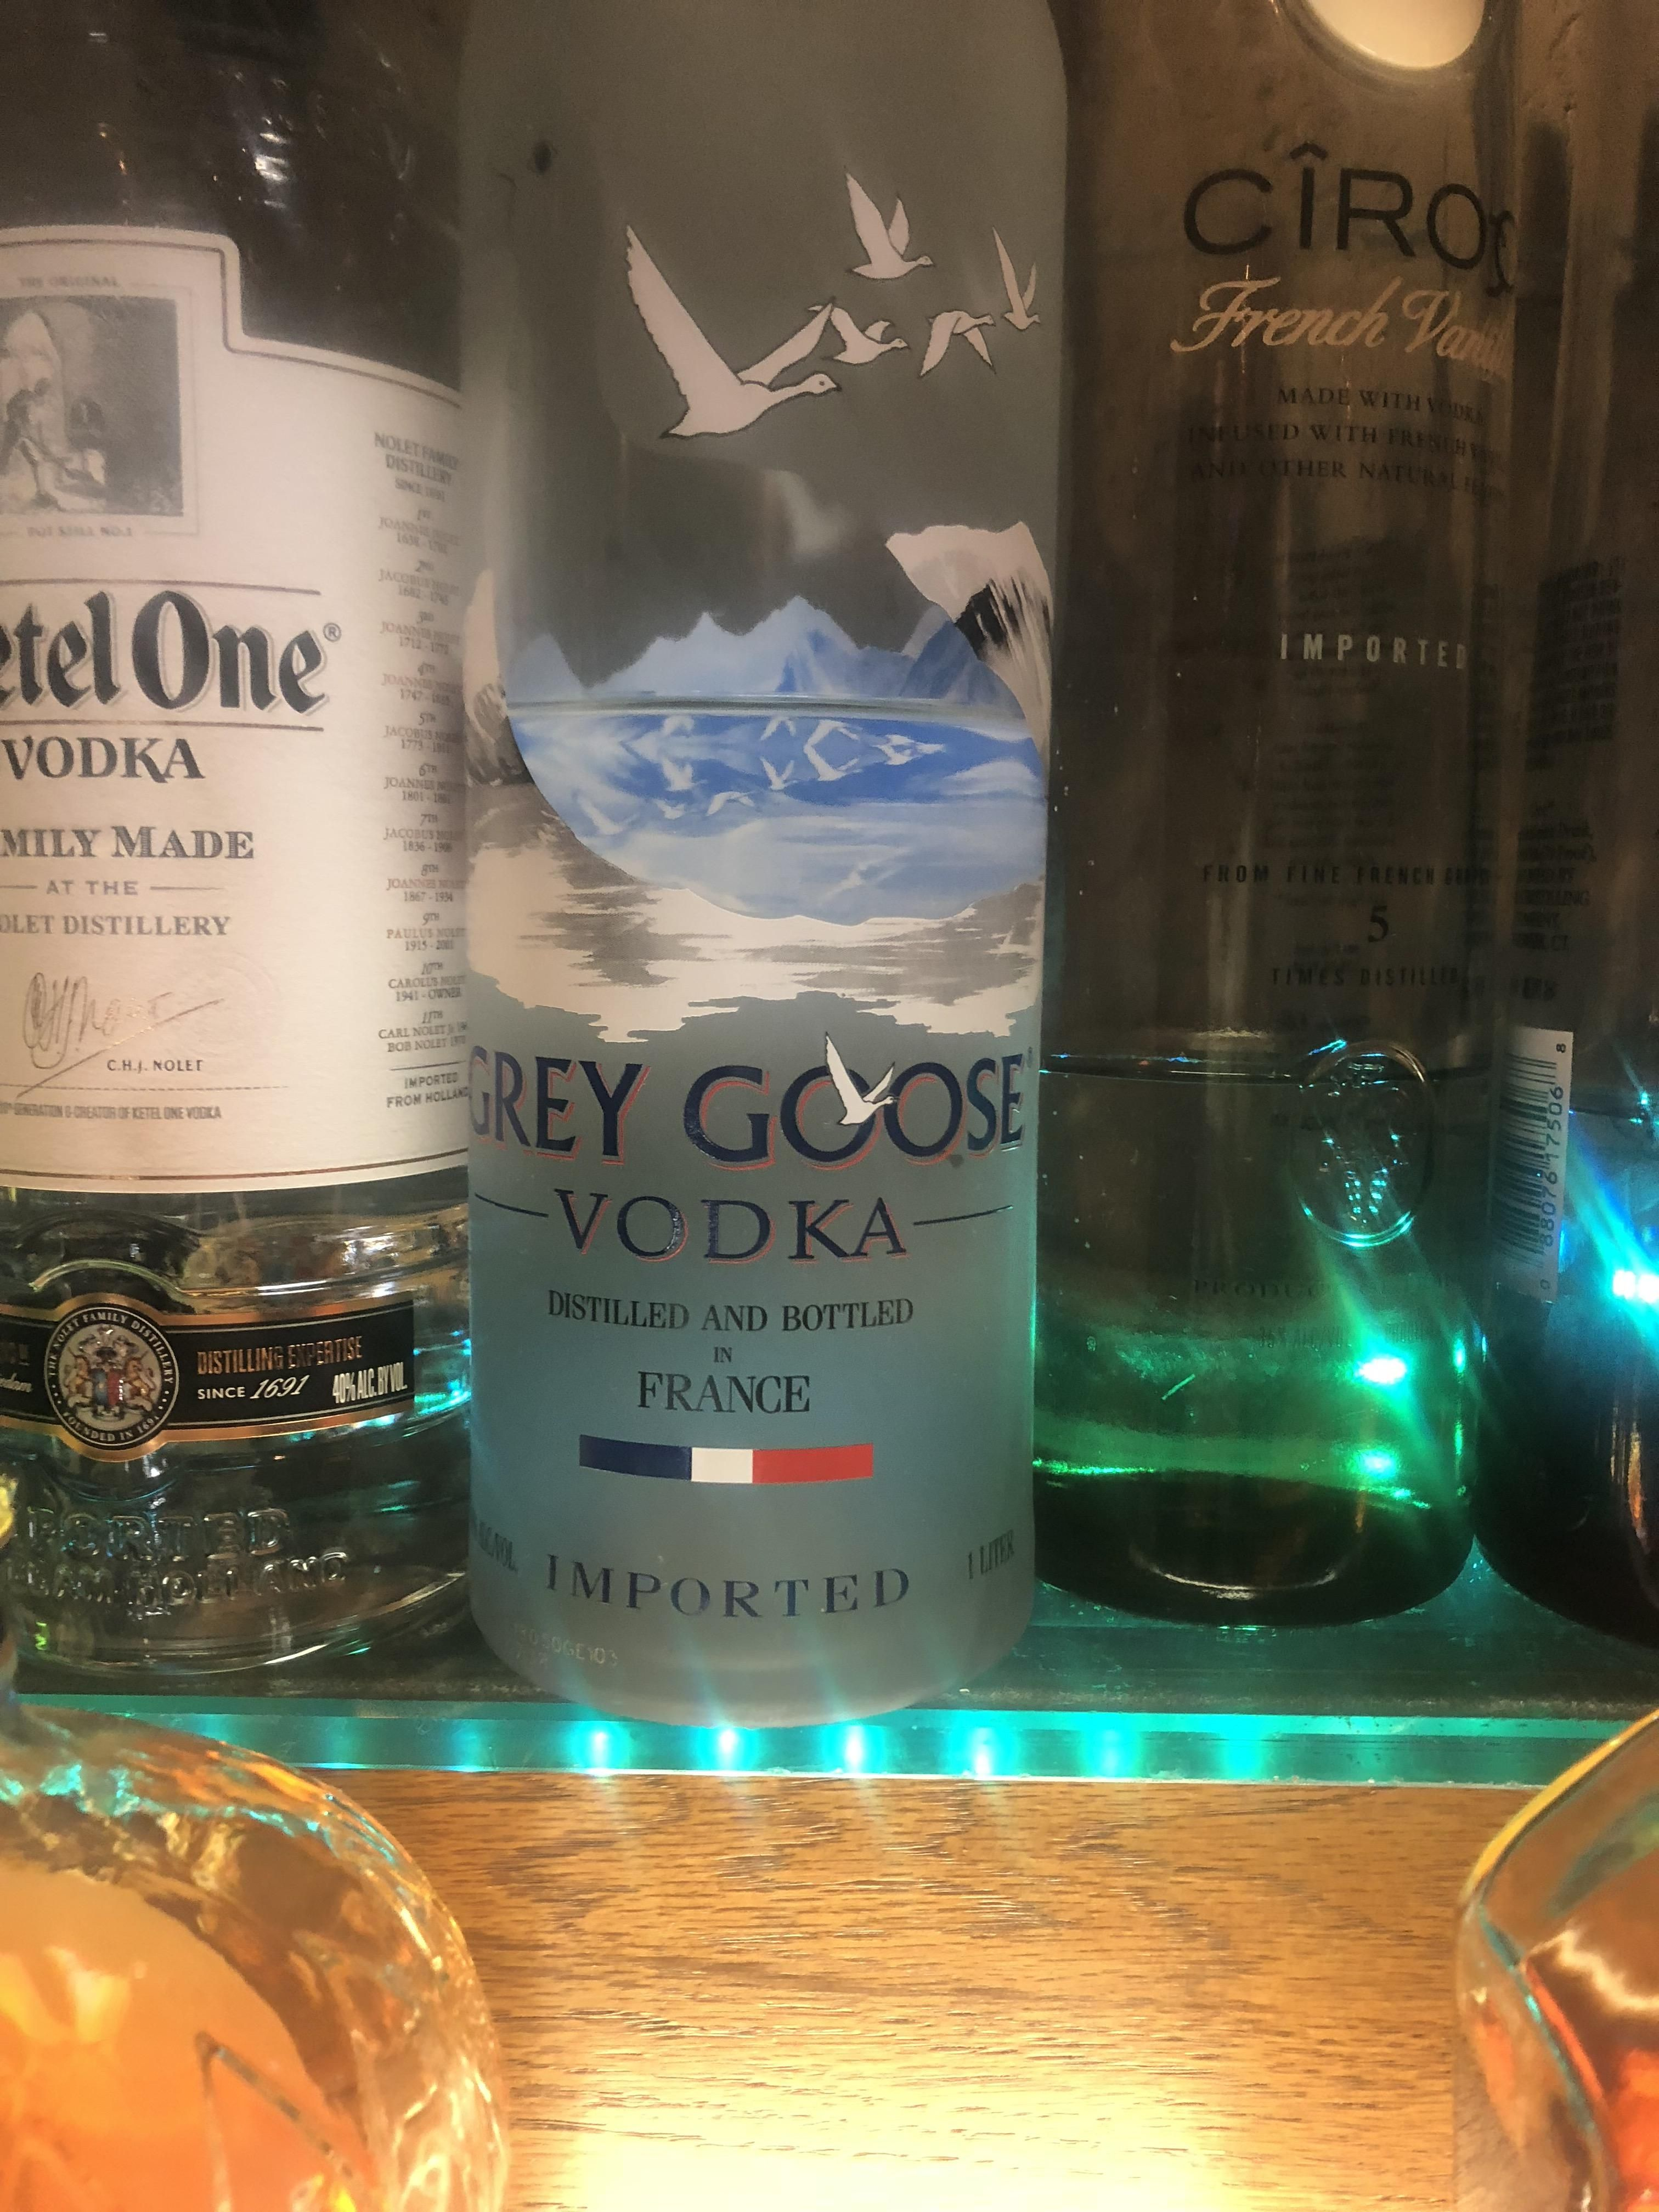 I Just Feel Like This Grey Goose Bottle Is At The Perfect Level Grey Goose Bottle Bottle Grey Goose Vodka